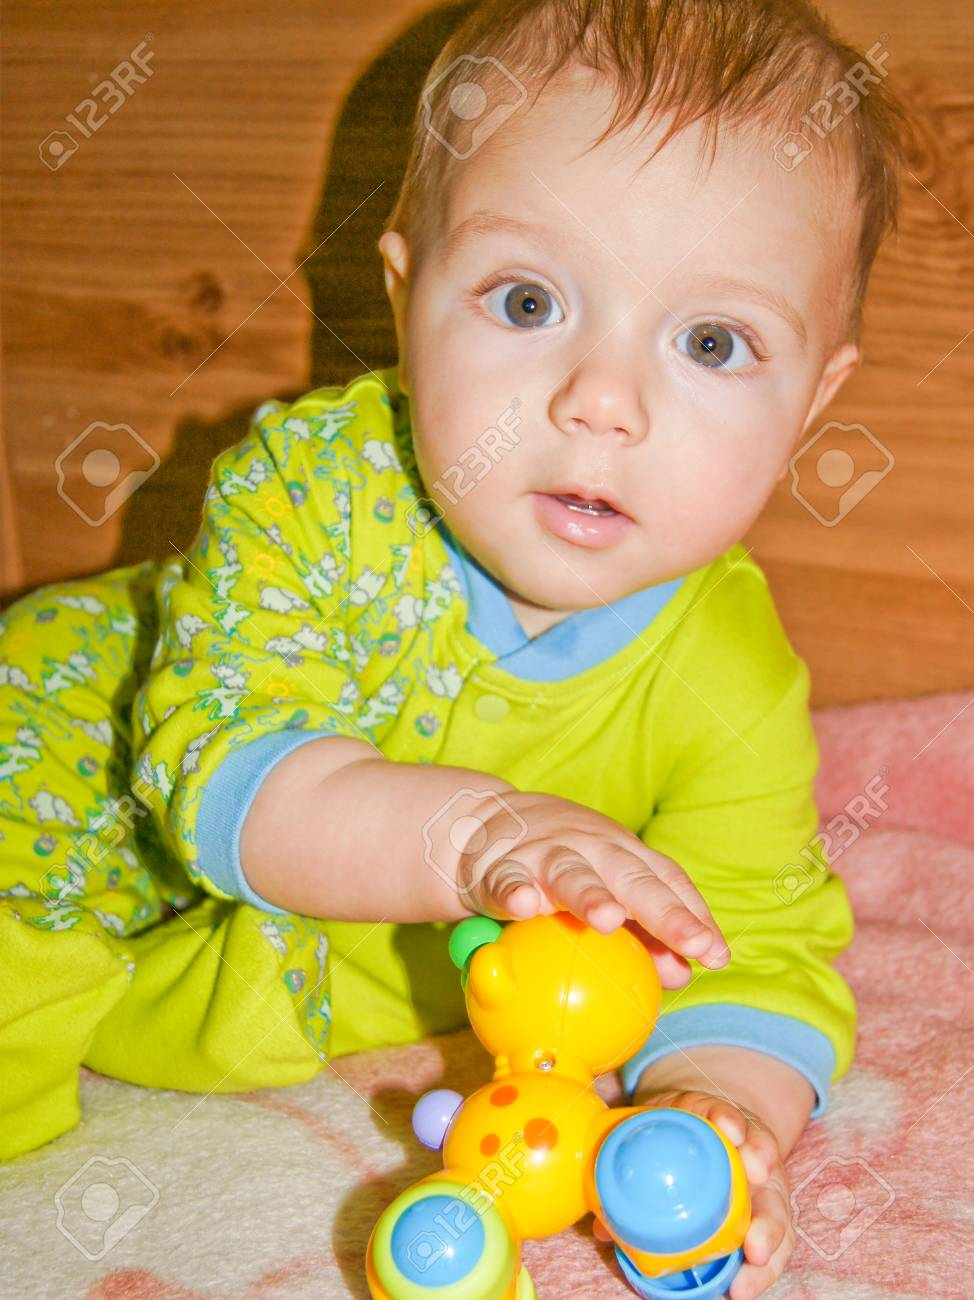 Funny little baby Stock Photo - 17352907